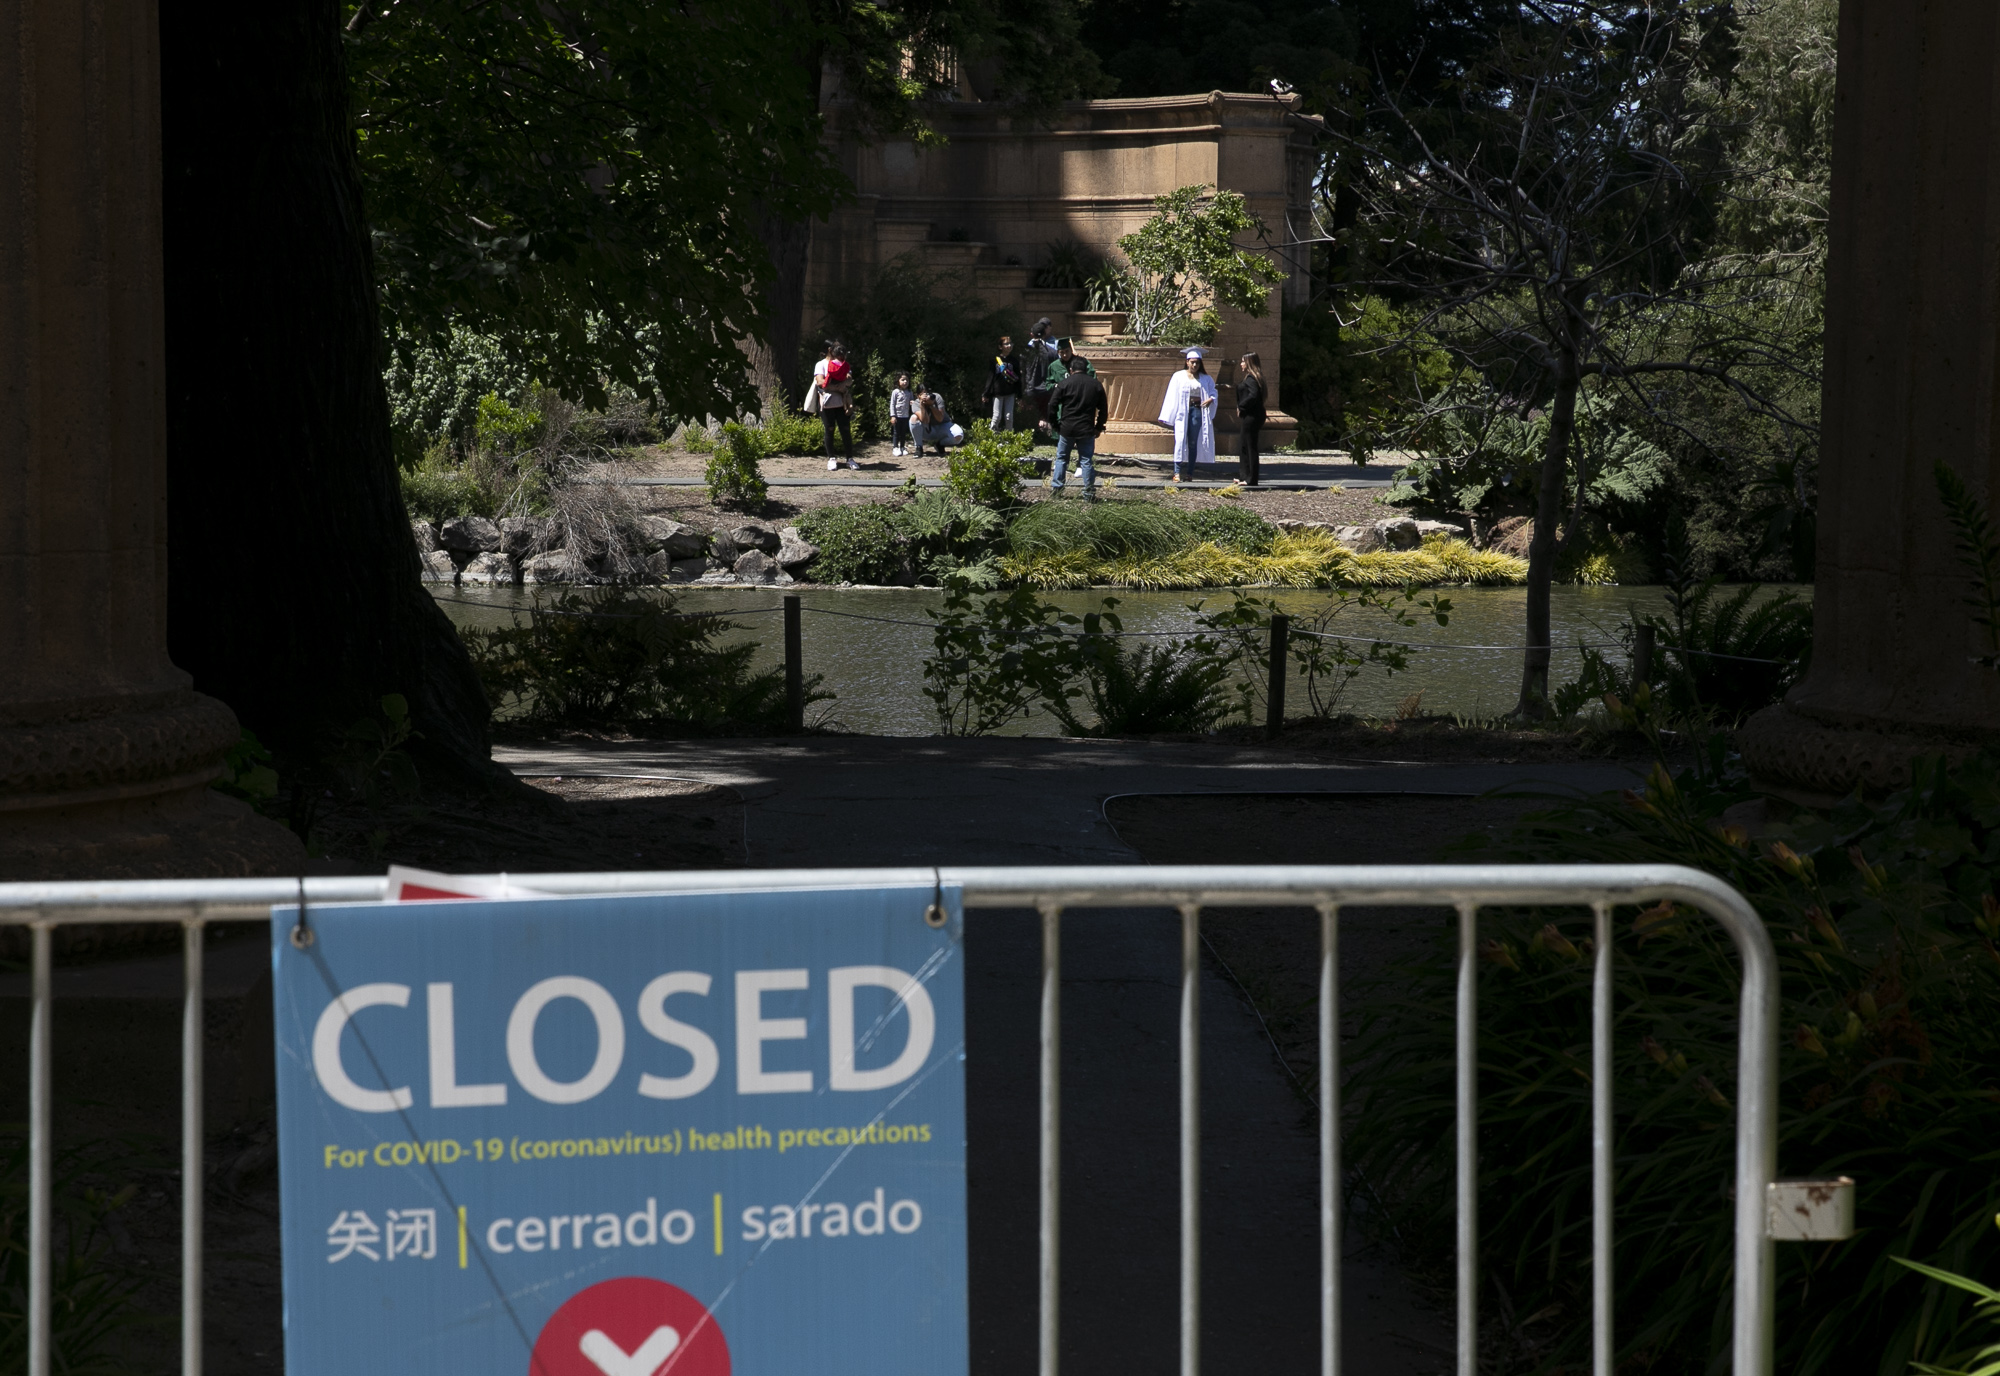 A group takes graduation photos at Palace of Fine arts despite parts of the park remaining closed to the public due to coronavirus concerns over Memorial Day Weekend in San Francisco, May 23, 2020. Photo by Anne Wernikoff for CalMatters